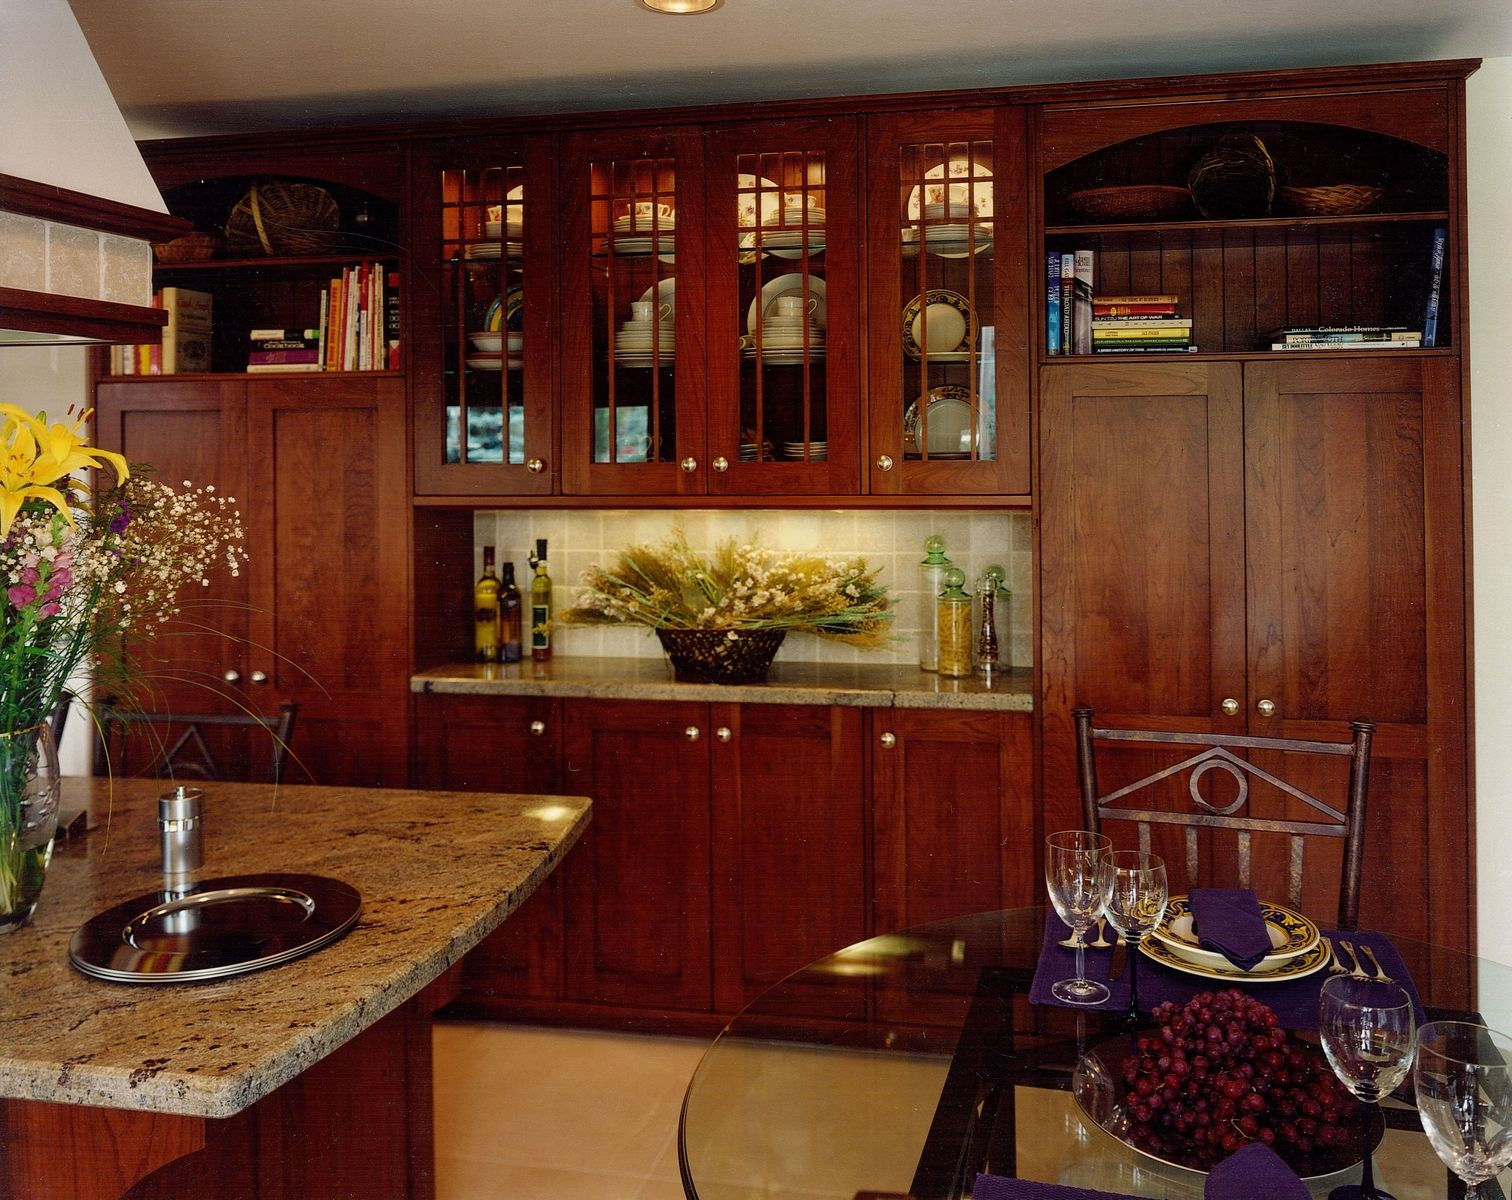 Custom Made Kitchen Cabinets hand made arts & crafts kitchen remodel of cherry woodcabinets